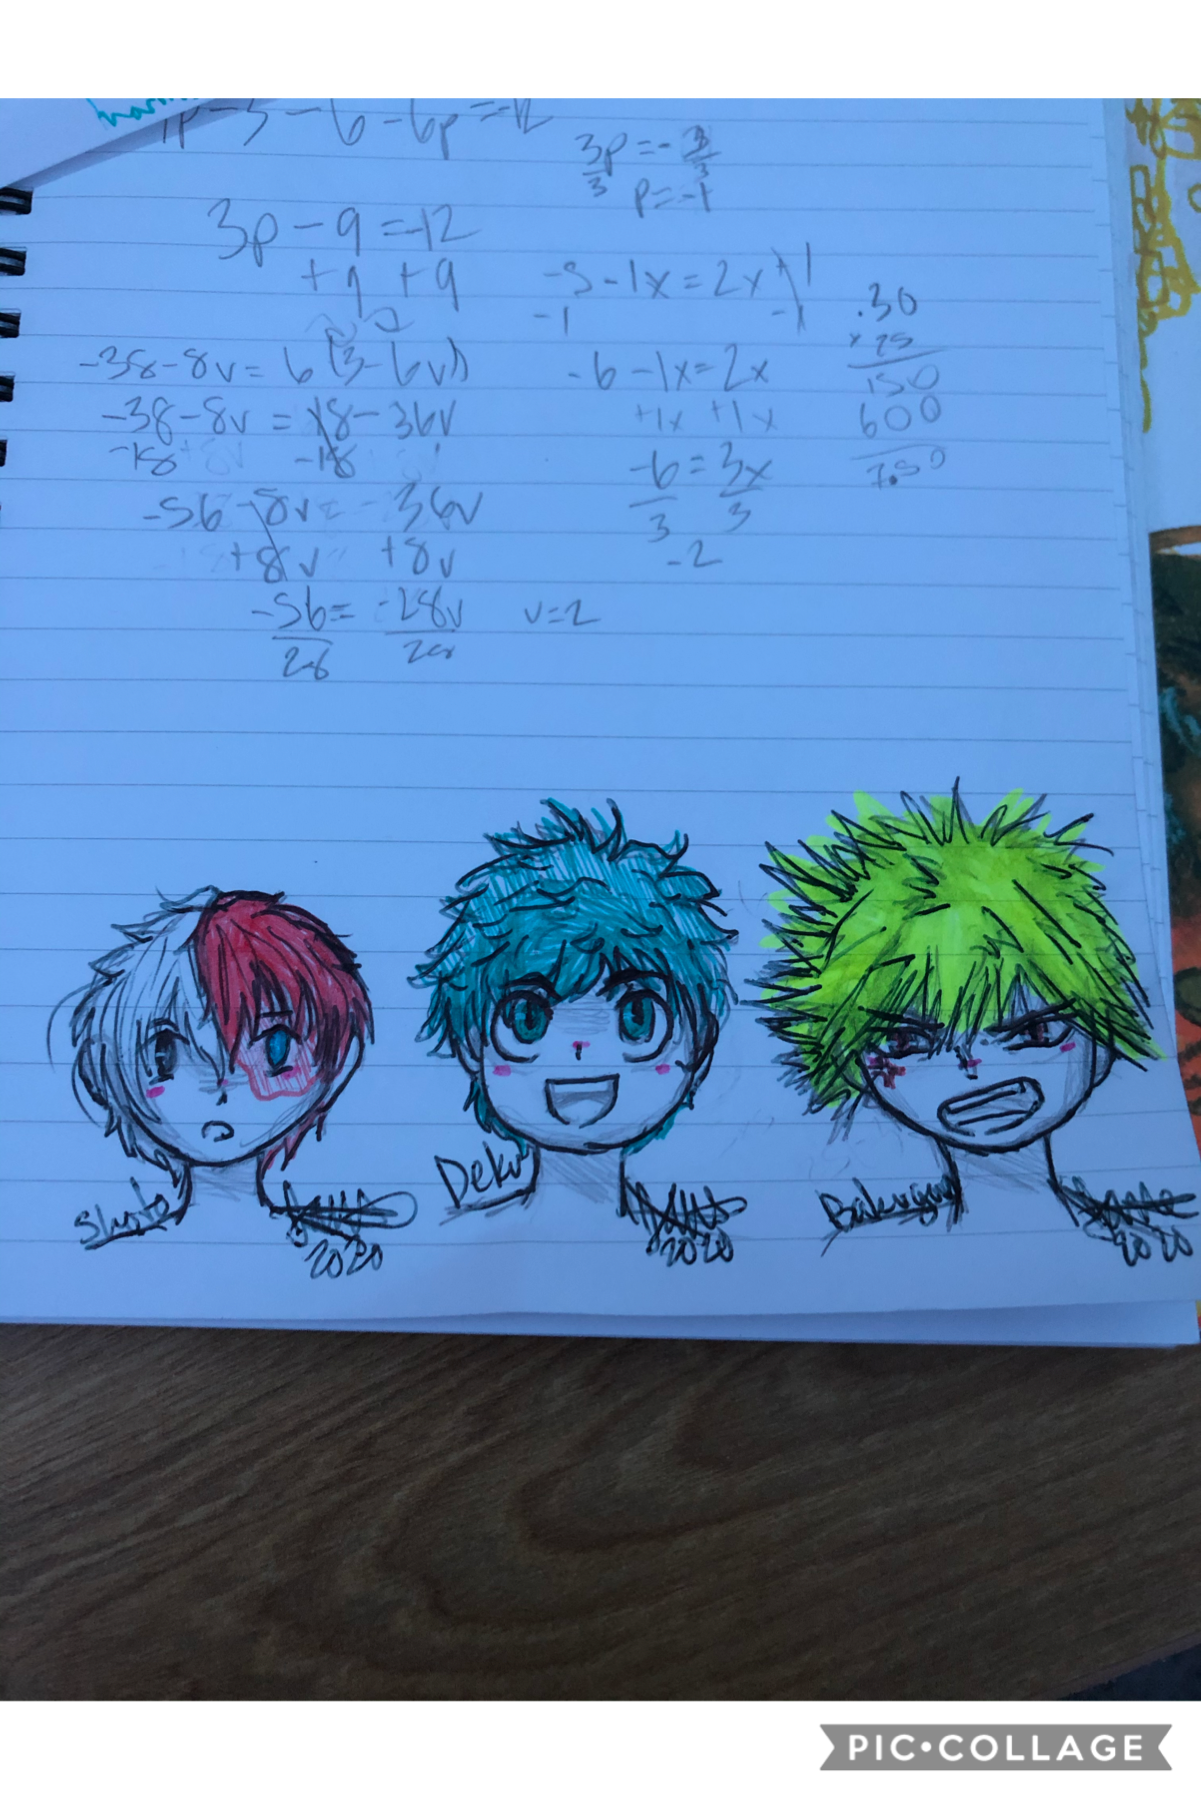 lookin pretty good for a dead bxtçh (she's aliveeee) anyways here are some sketches of Shoto, Izuku and Katsuki :)